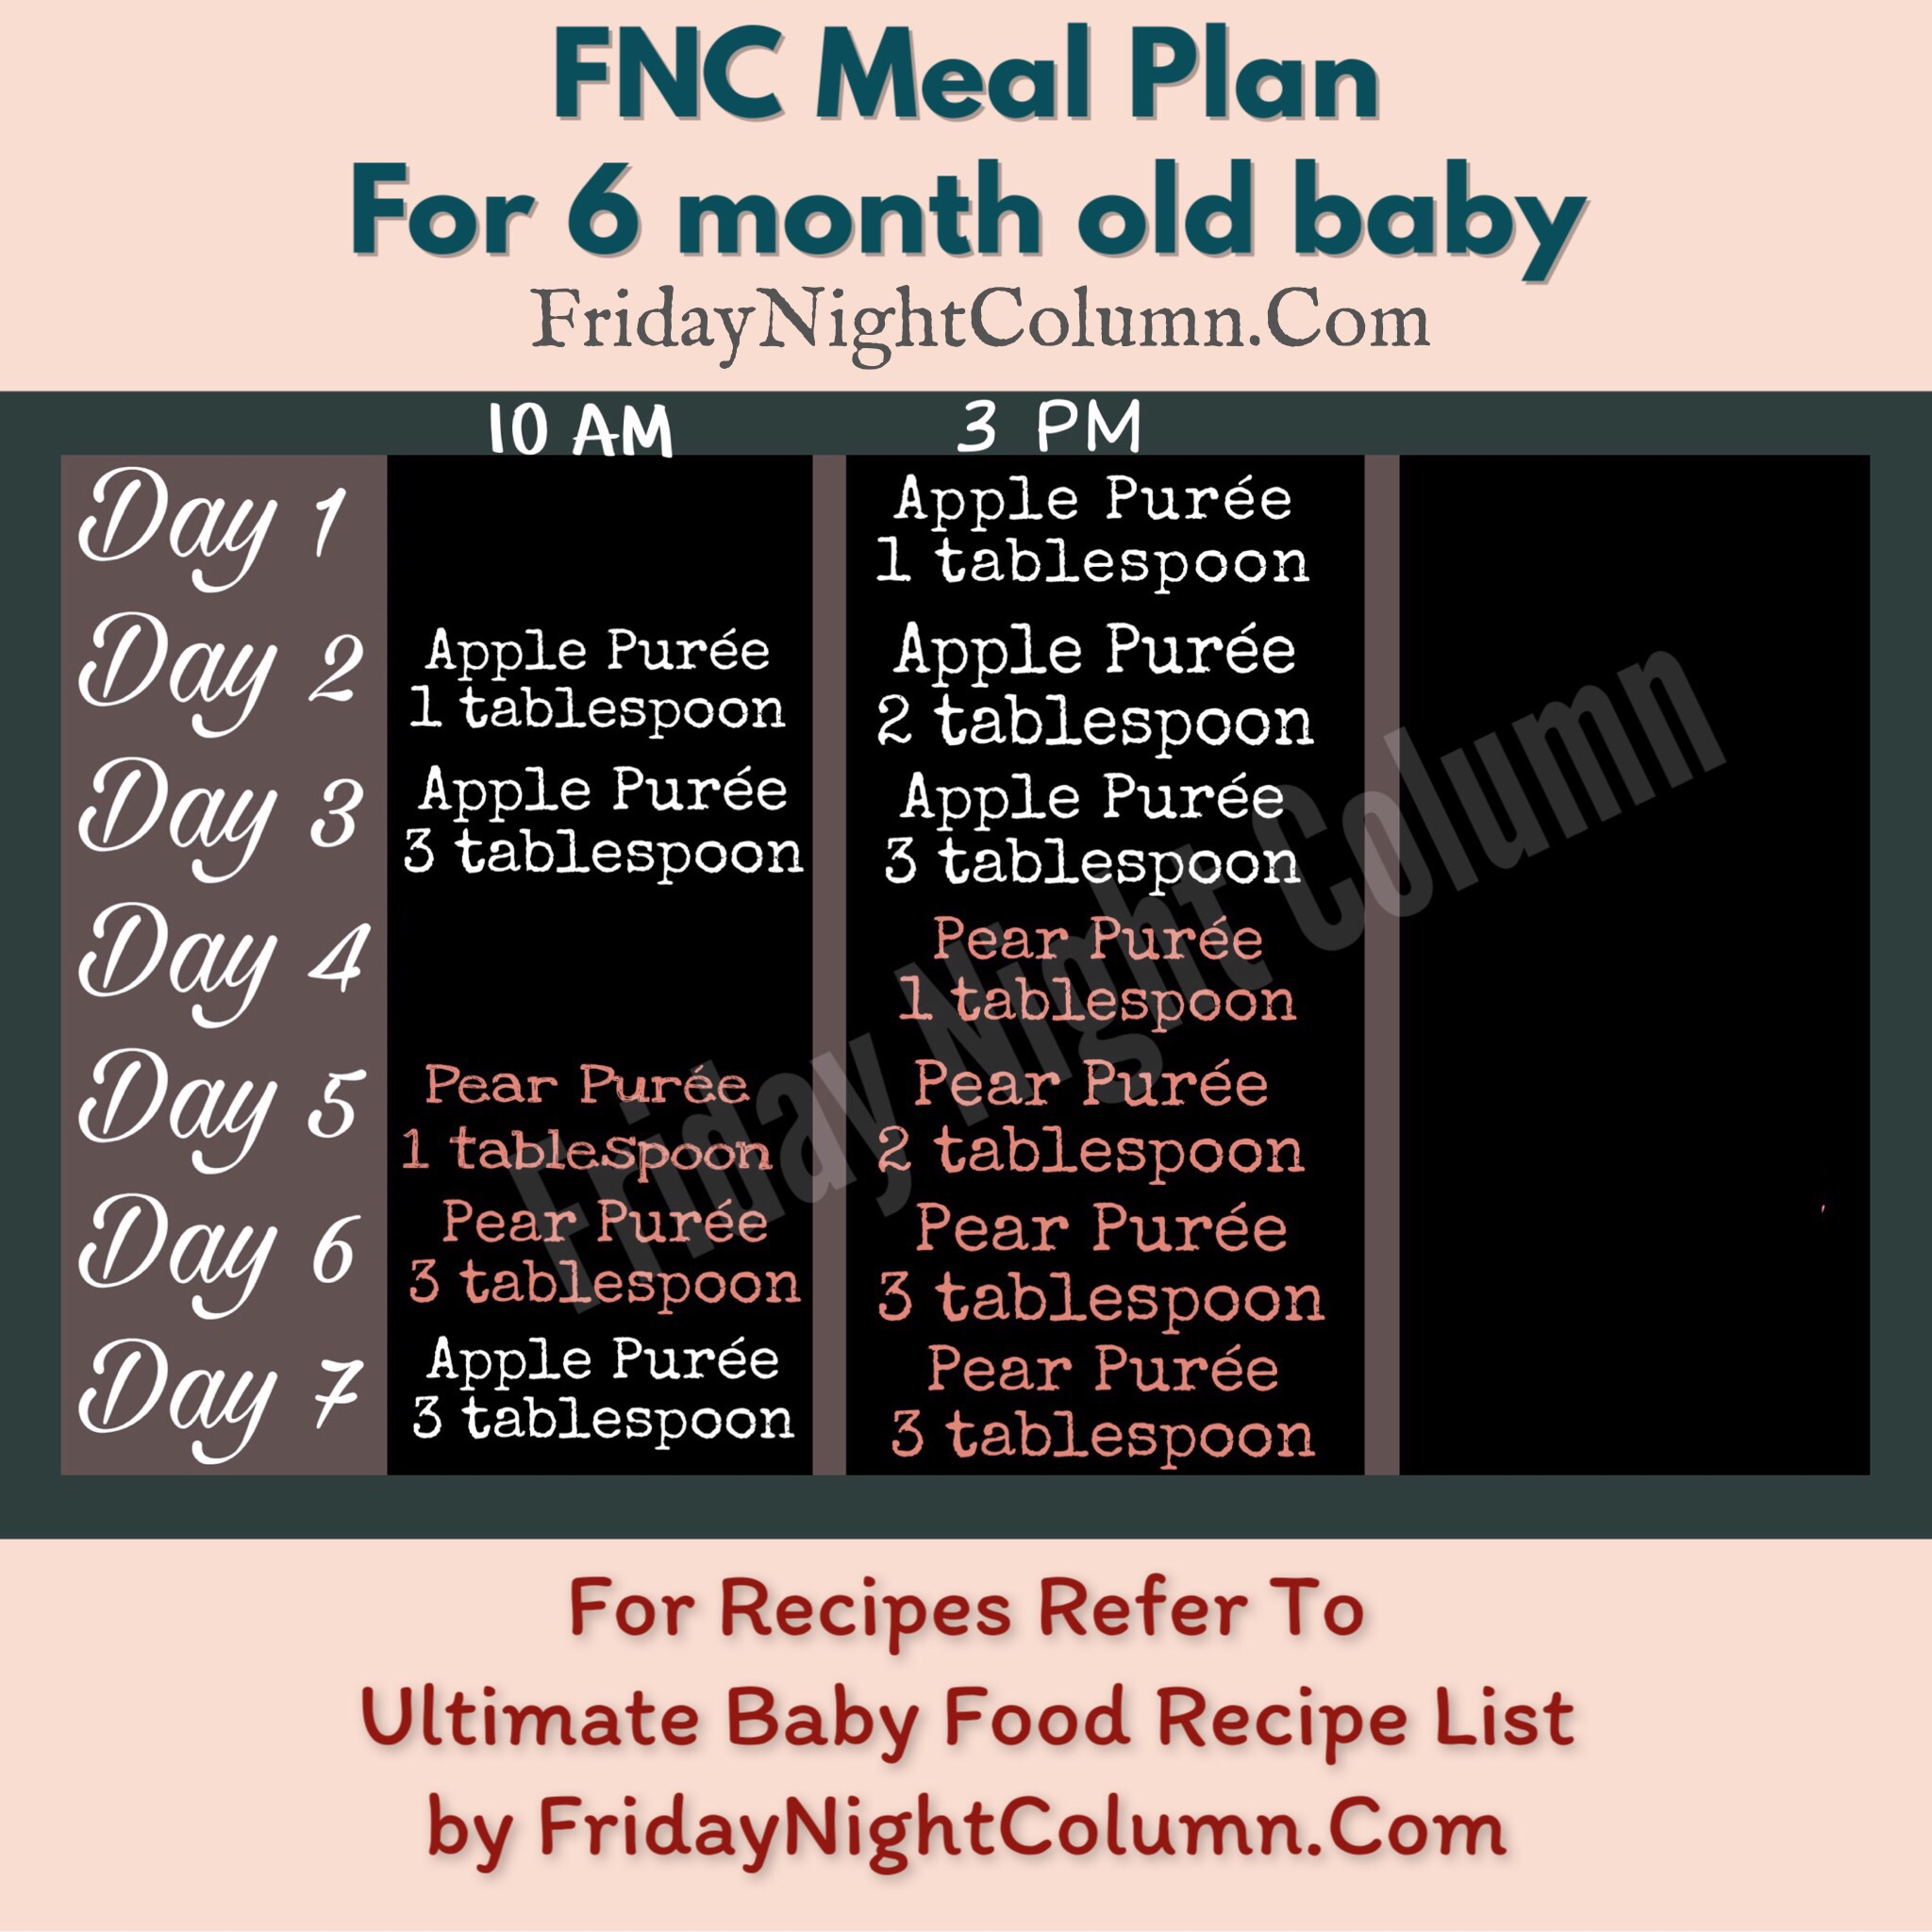 FNC Meal Plan For Babies 6 to 8 months – Friday Night Column